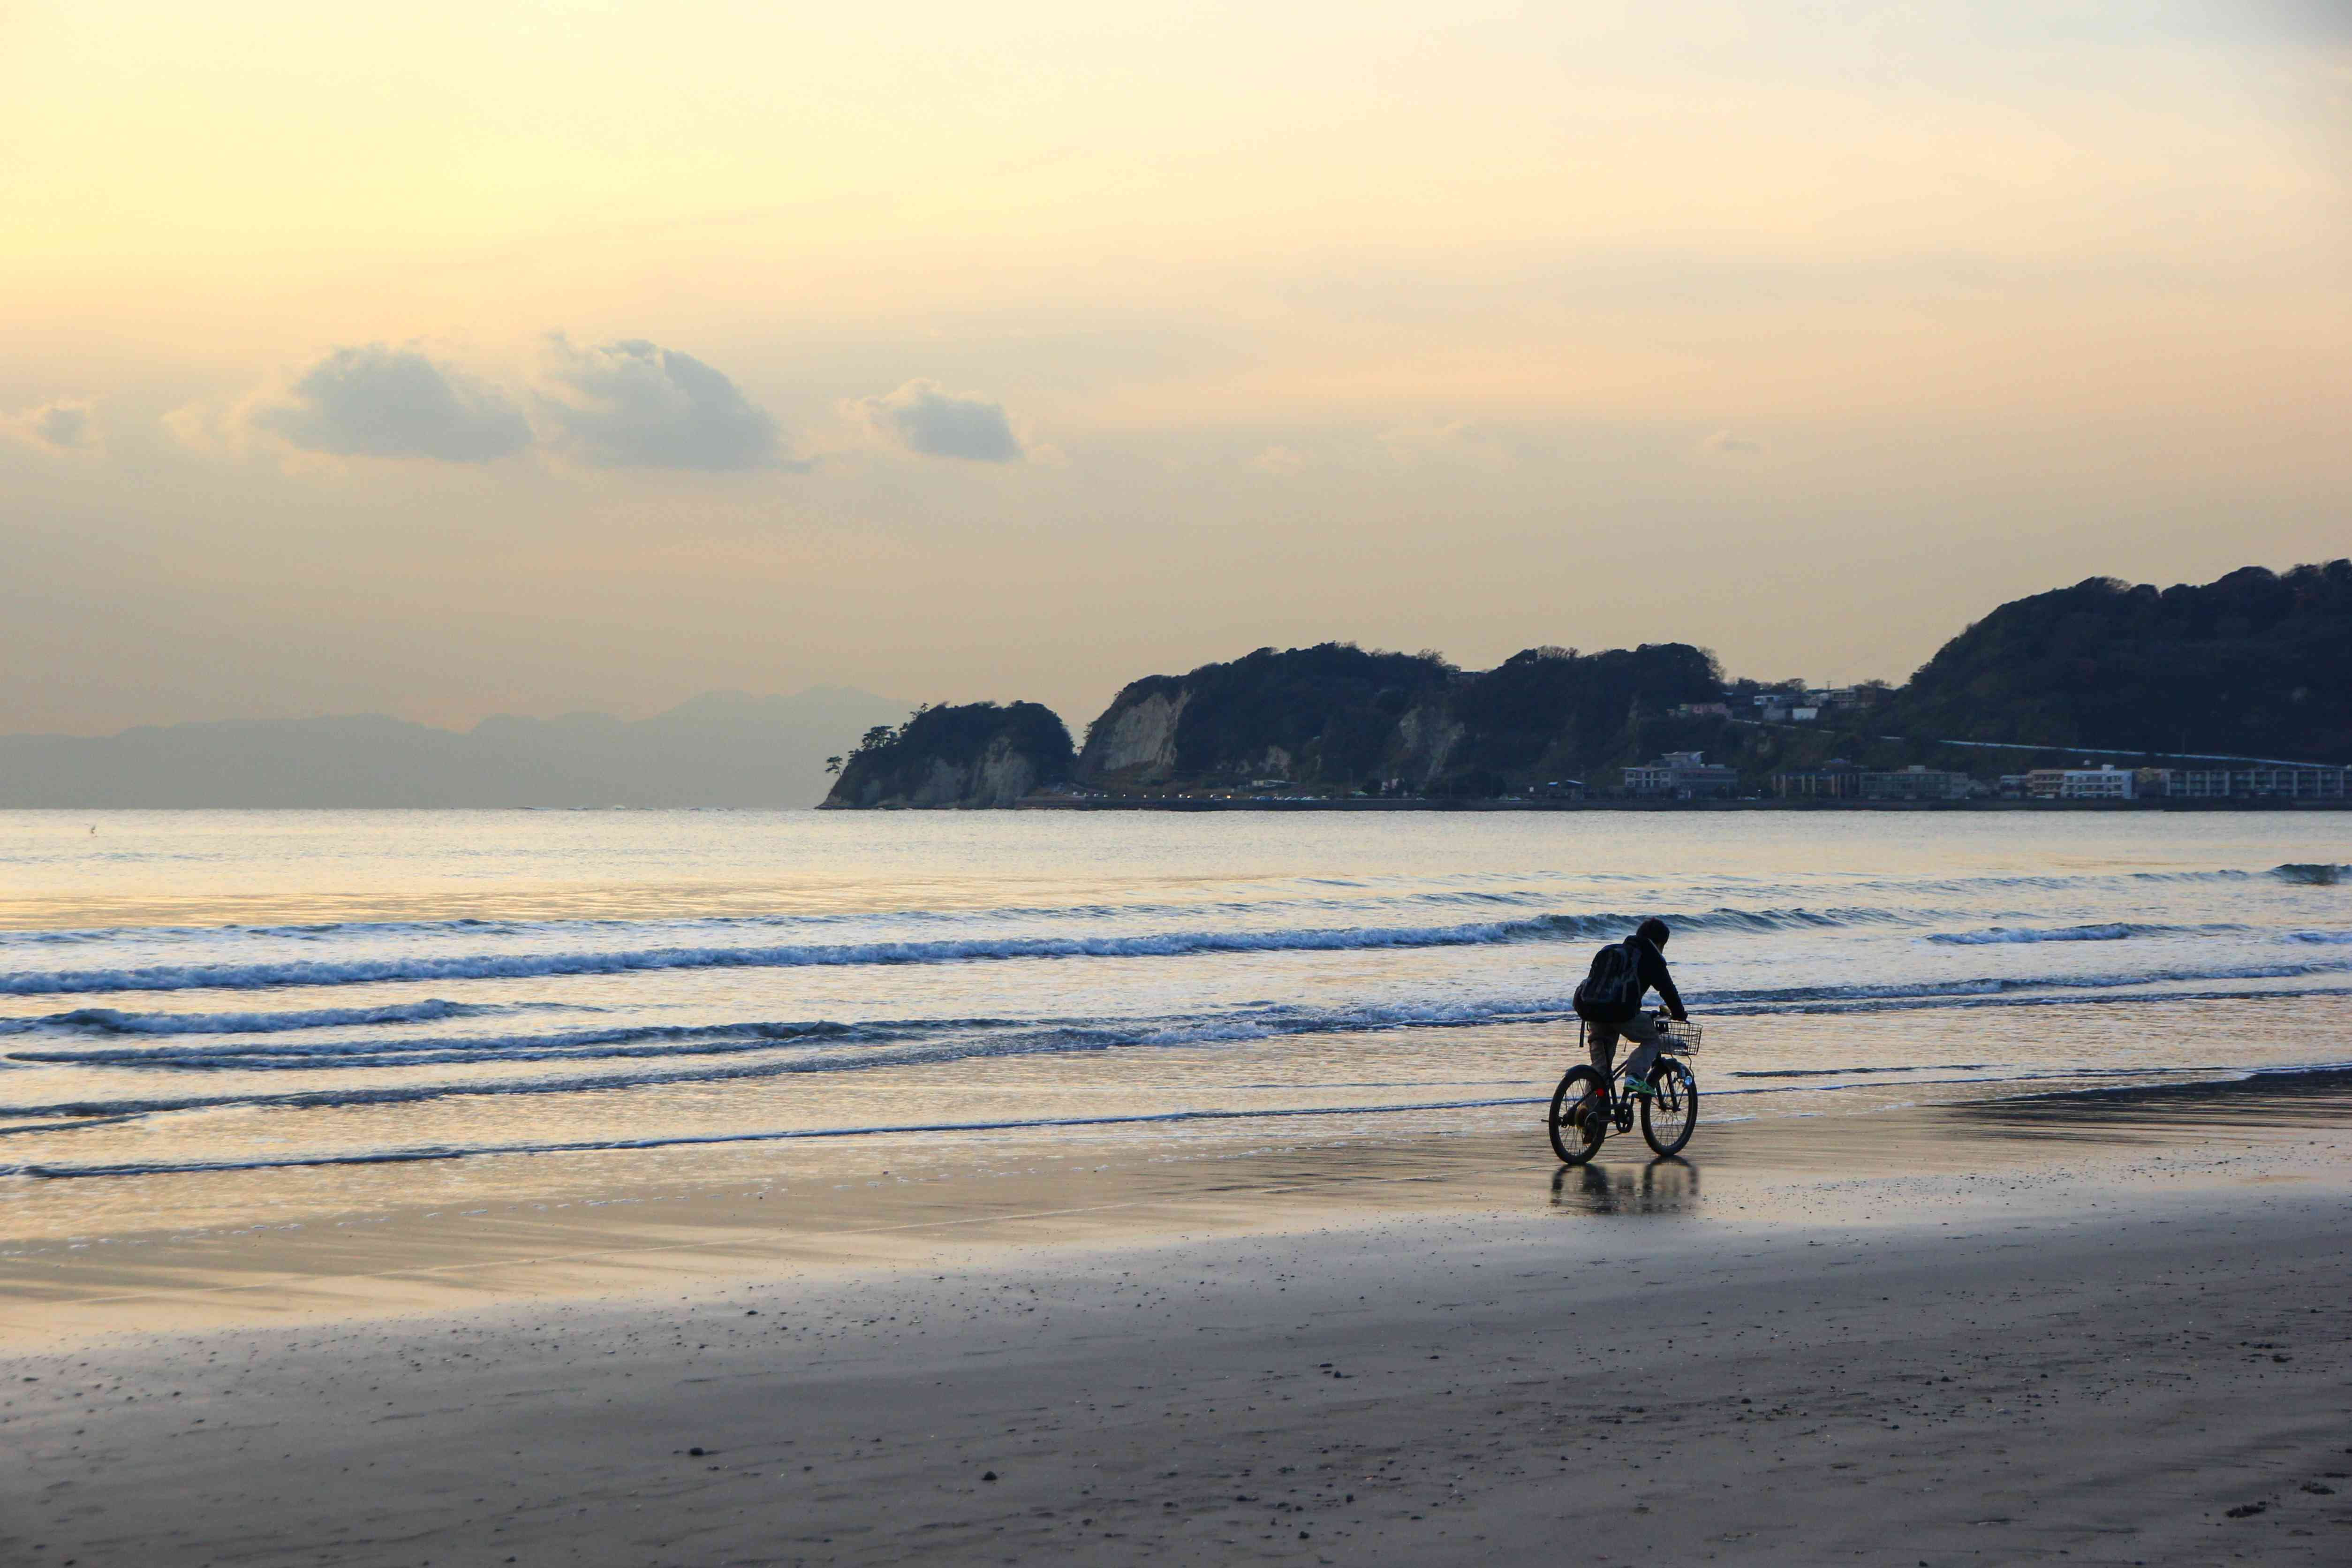 person rides bike along ocean's edge at dusk with hill formation in background